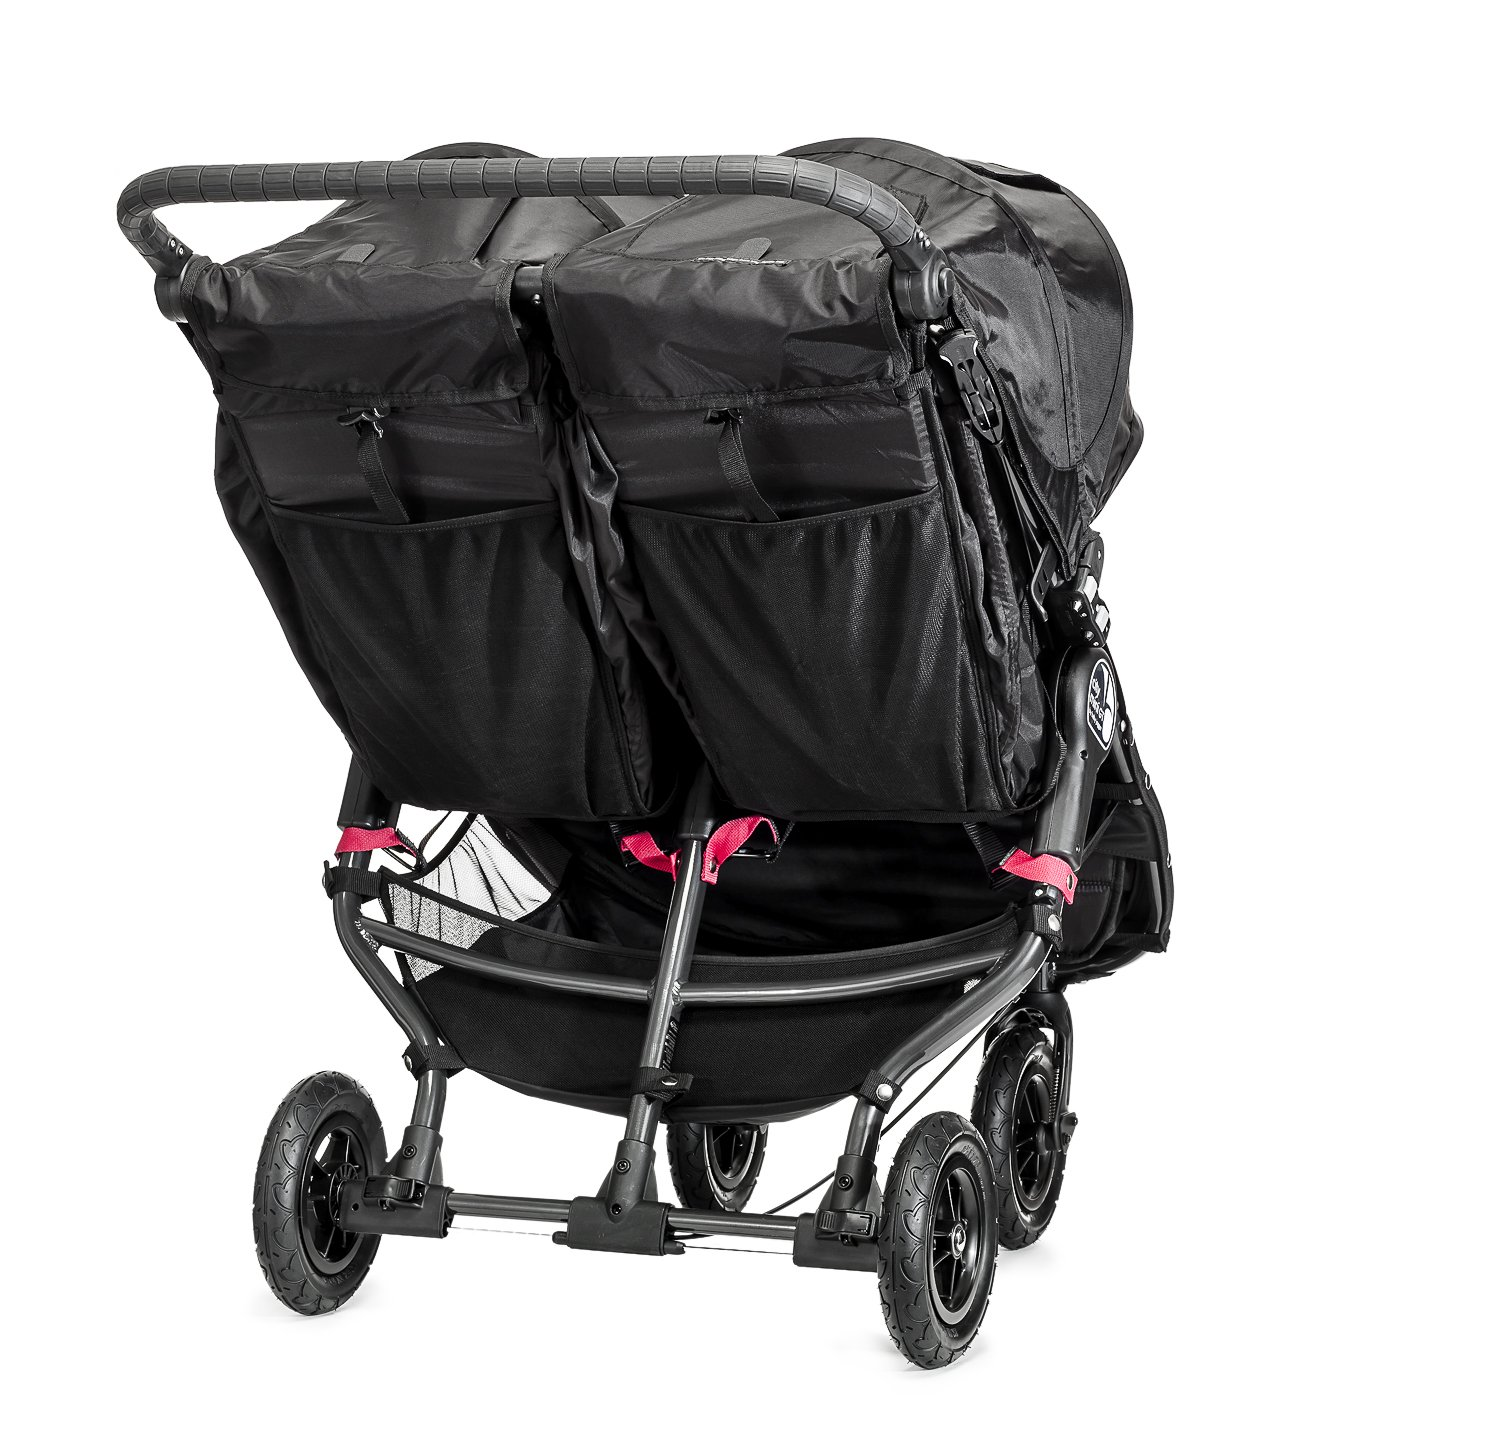 Amazon Baby Jogger 2014 City Mini GT Double Stroller Black Discontinued by Manufacturer Standard Baby Strollers Baby